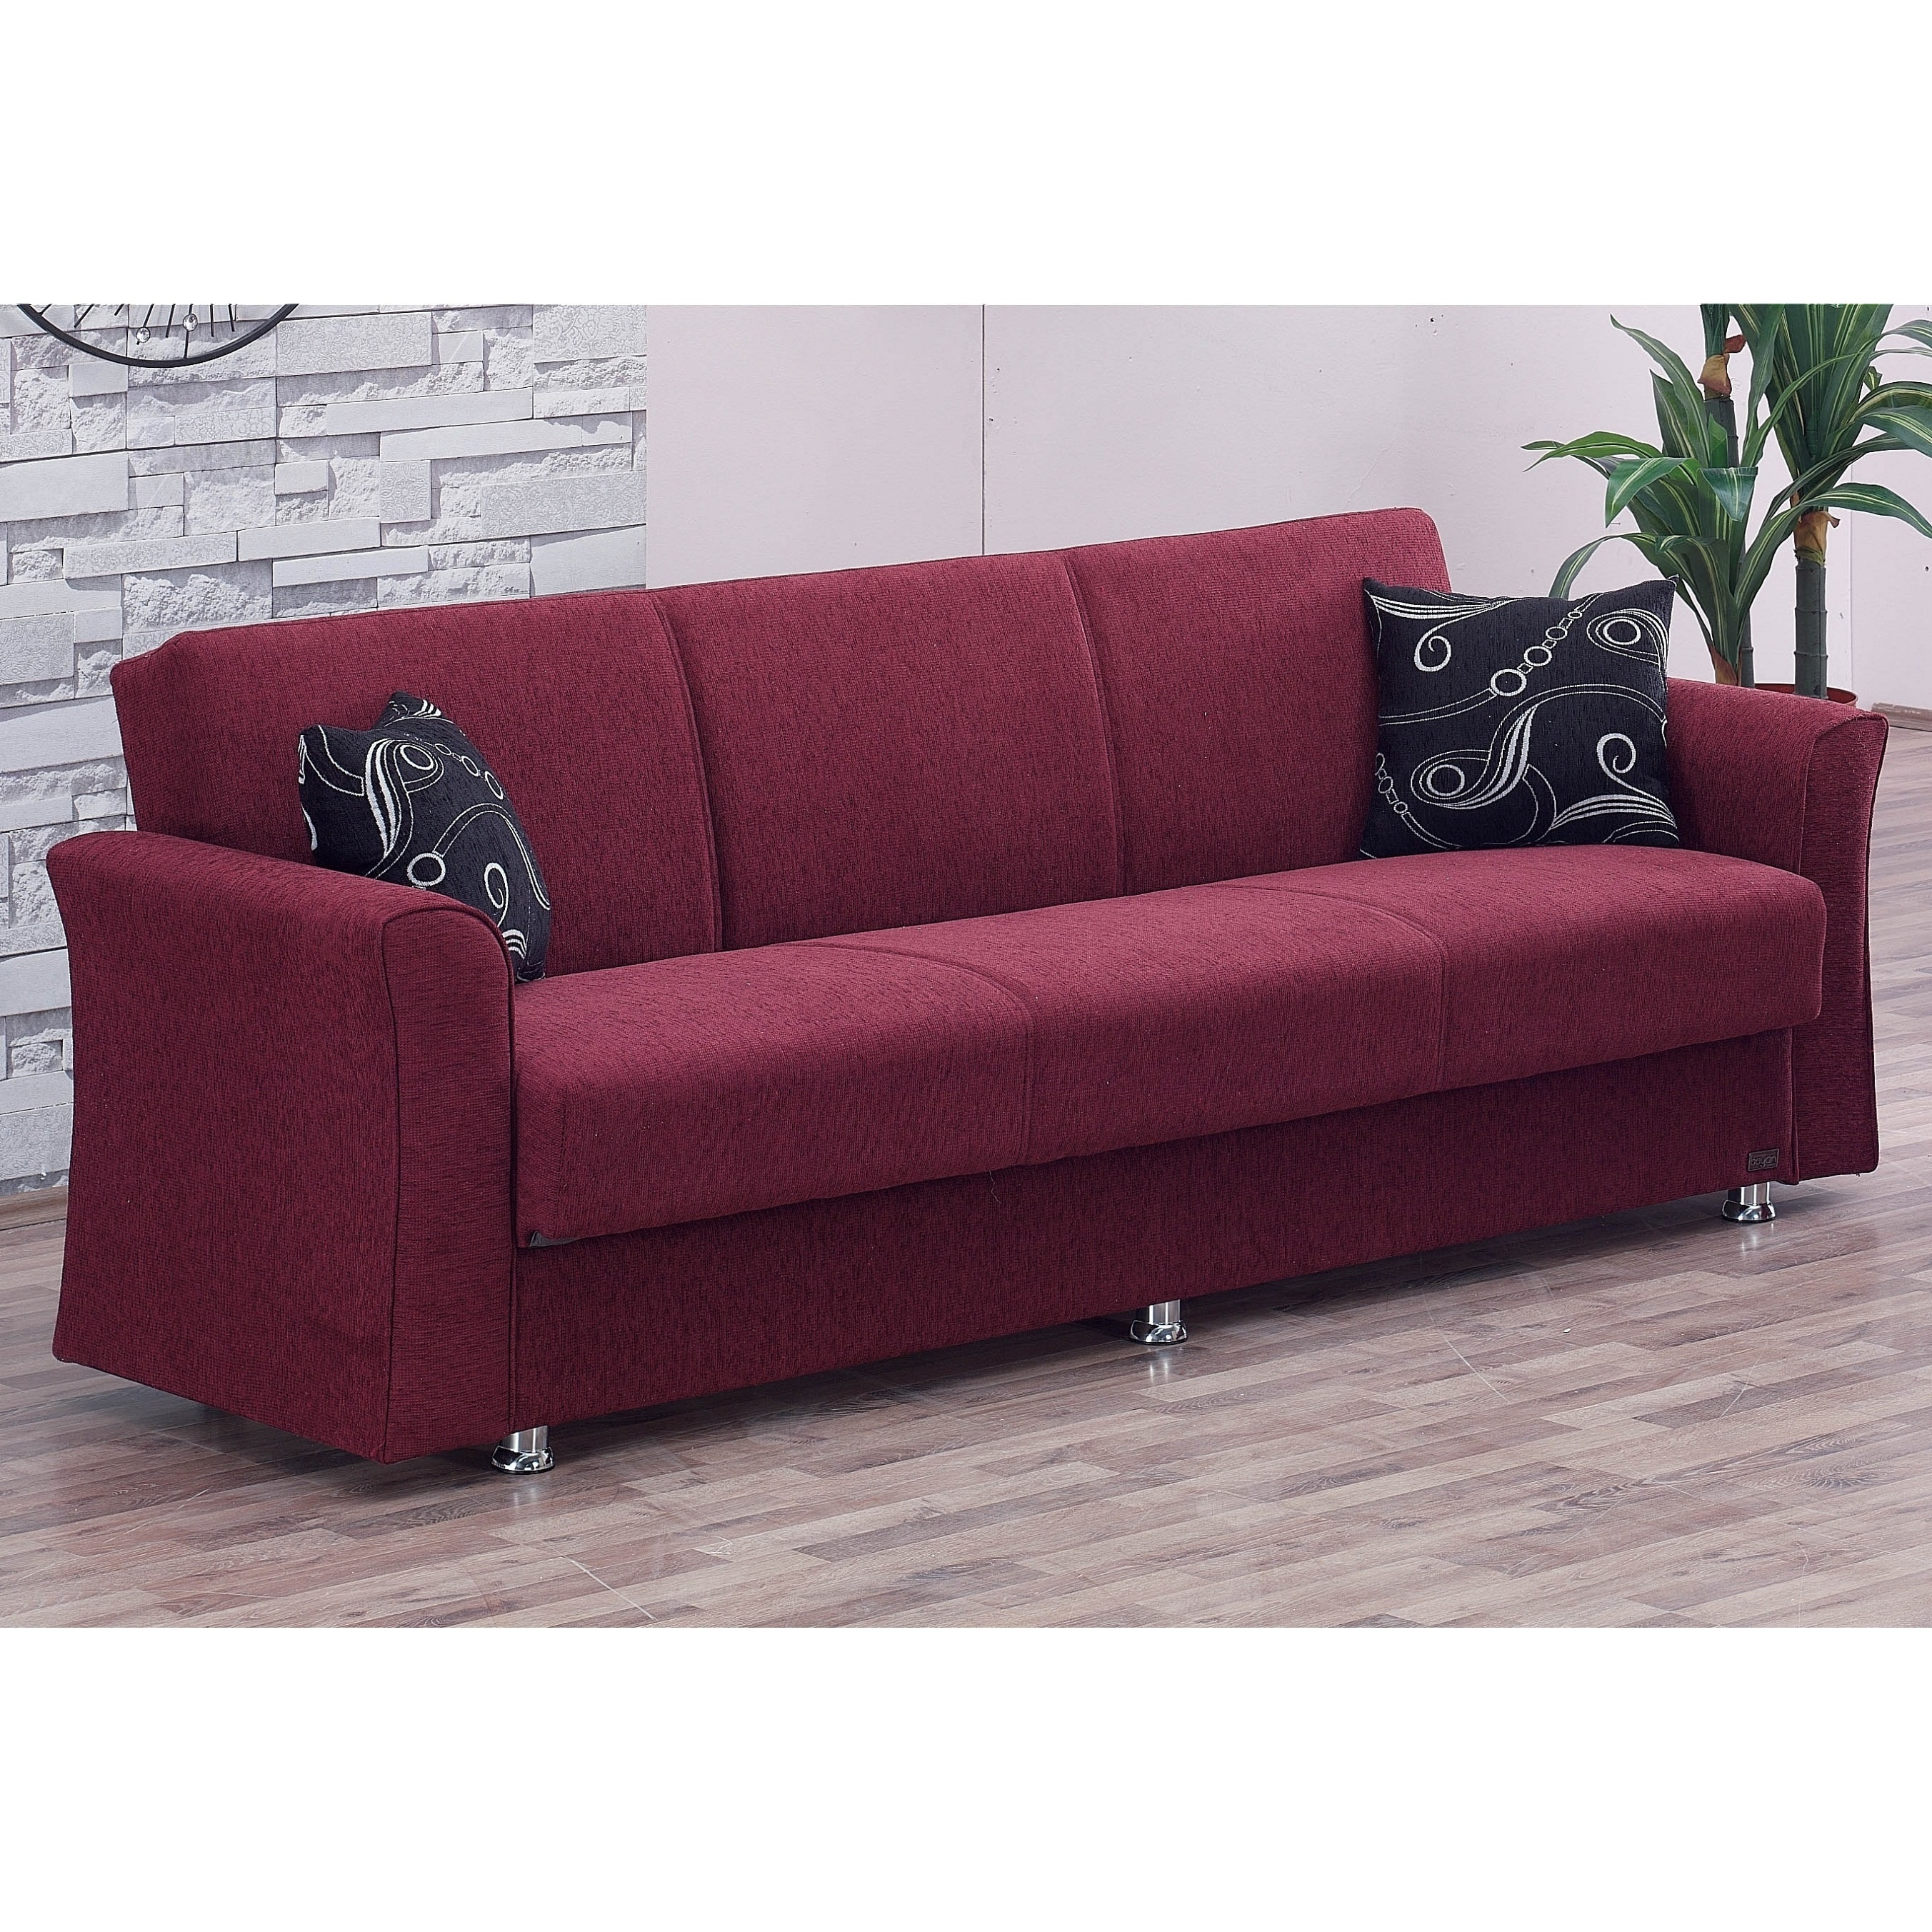 Ohio Convertible Sofa Bed, Red